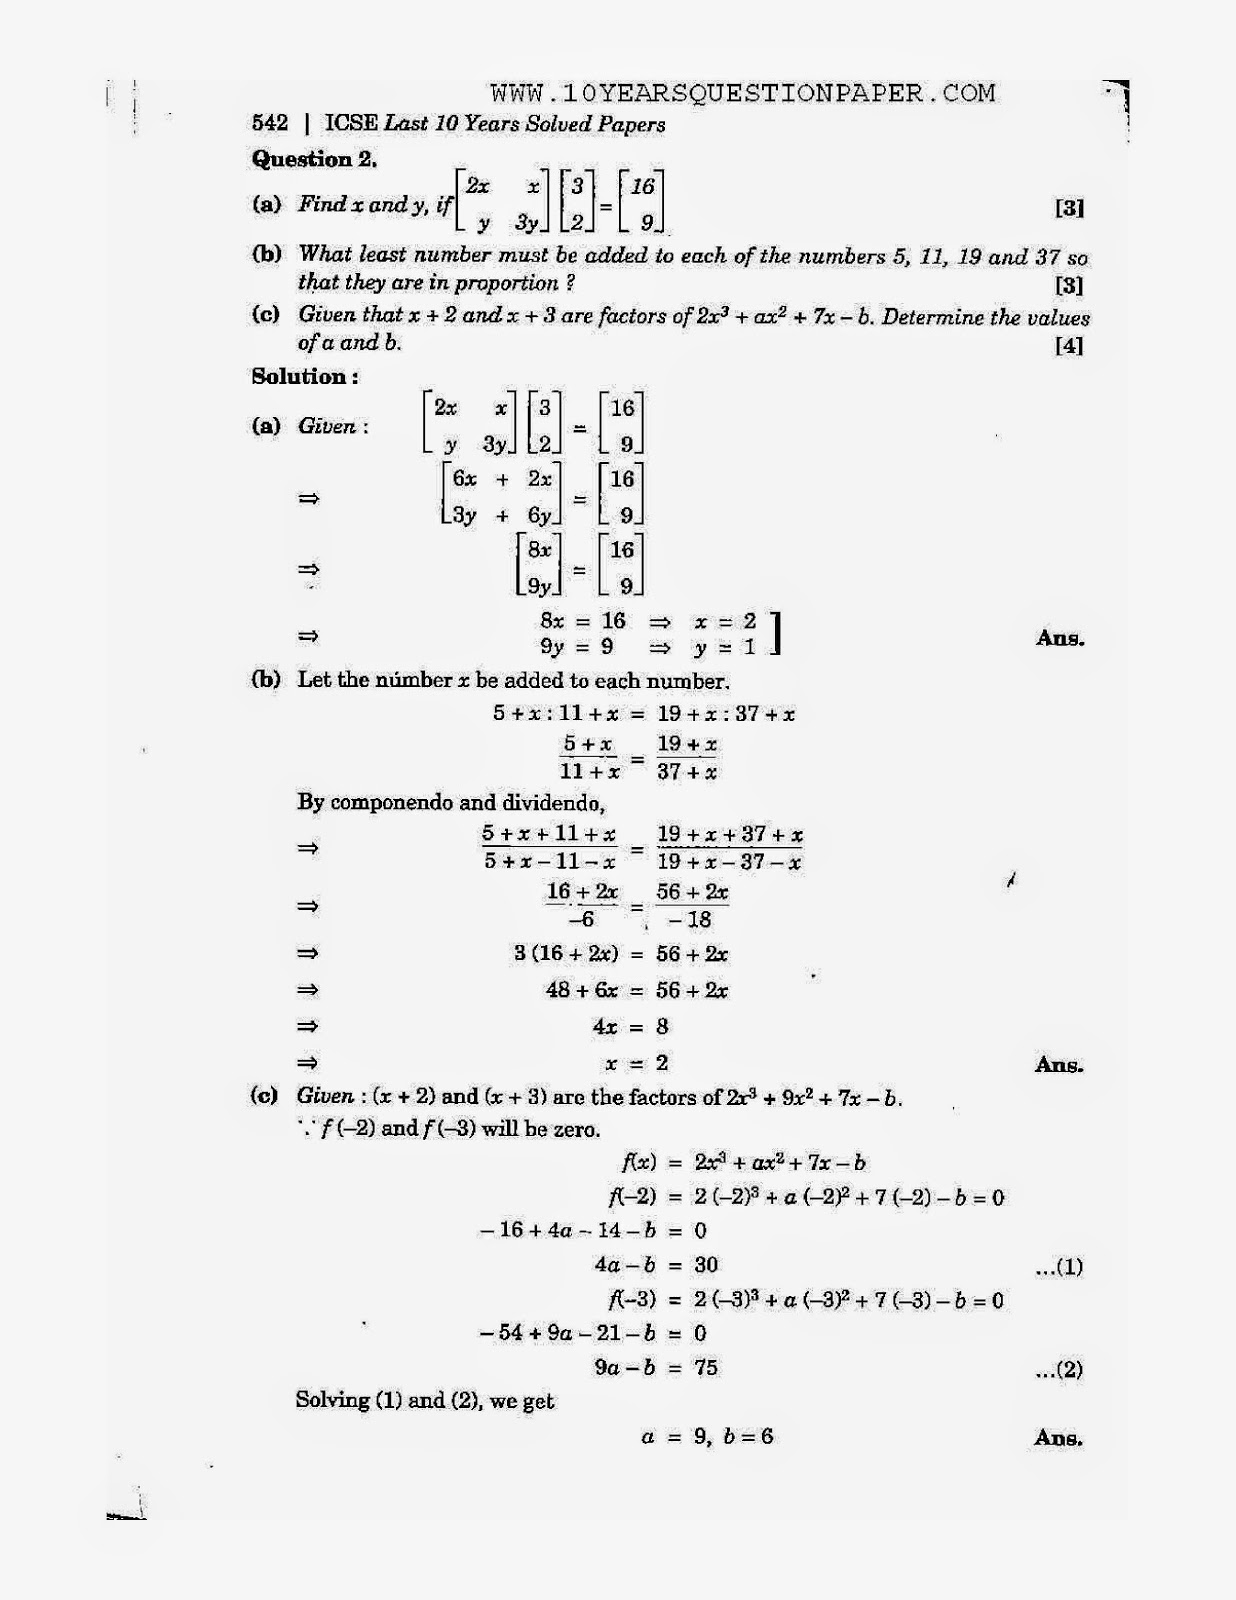 icse class 10th mathematics solved question paper 2009